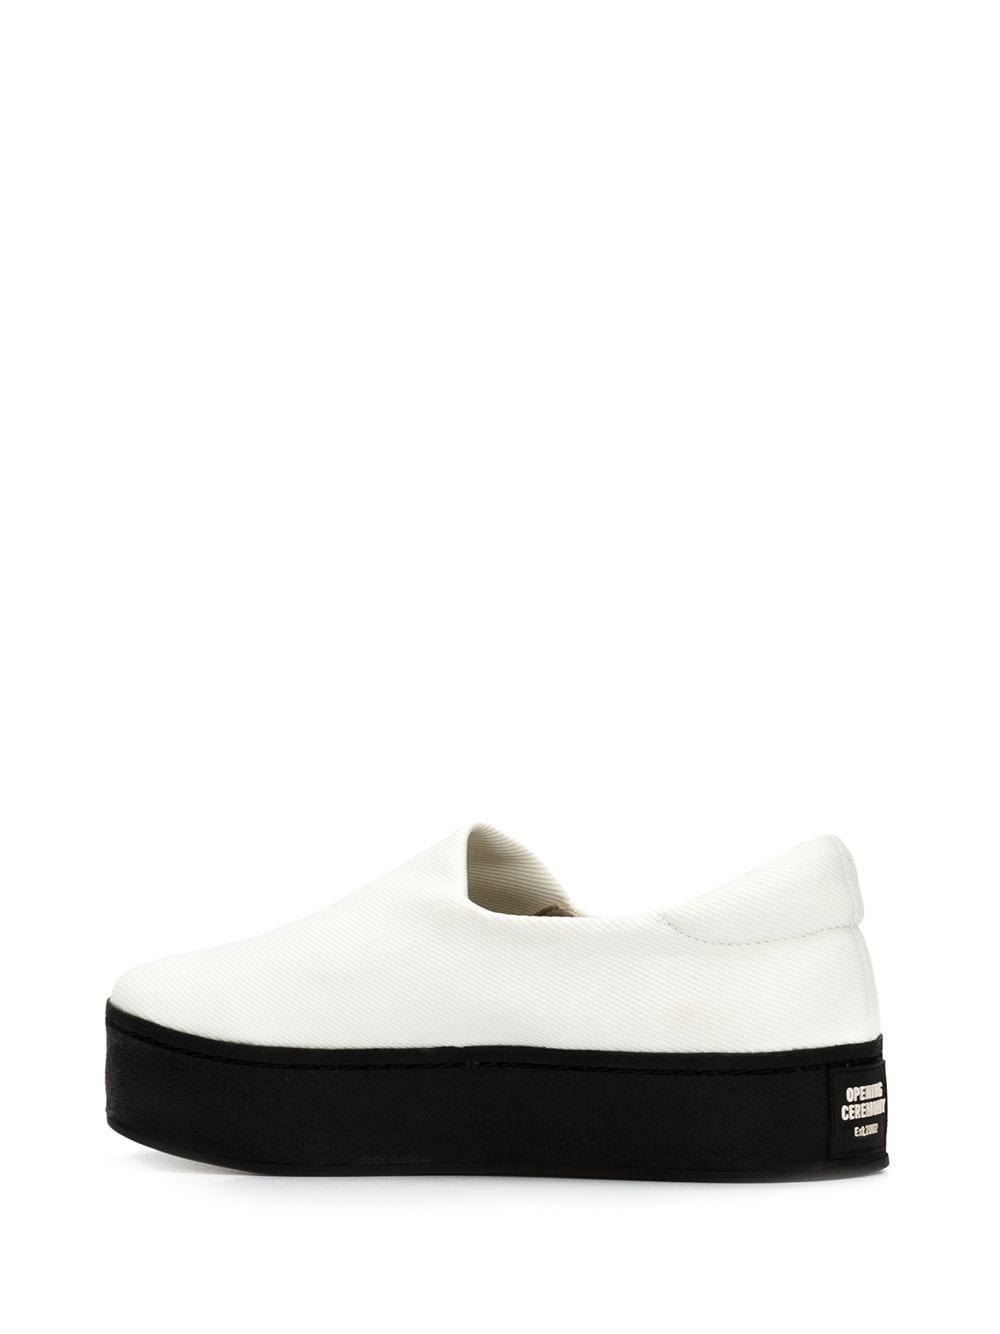 Opening Ceremony Cotton Flatform Slip-on Sneakers in White